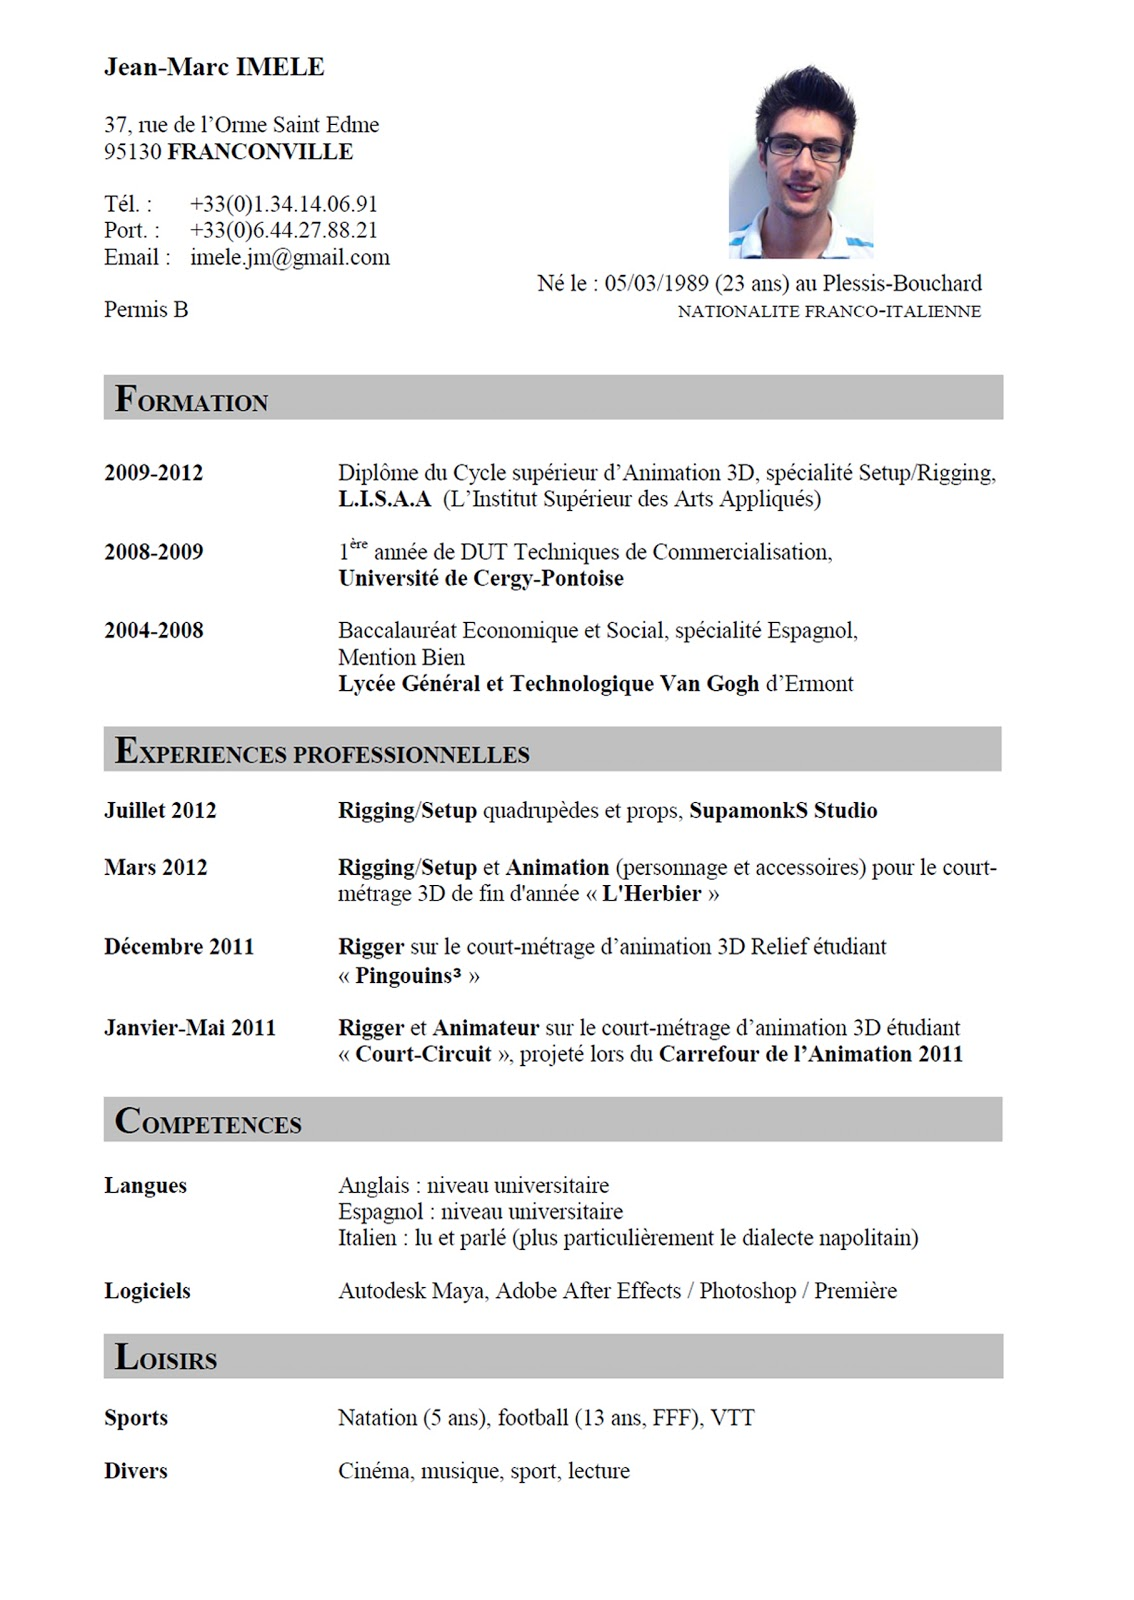 cv template french format